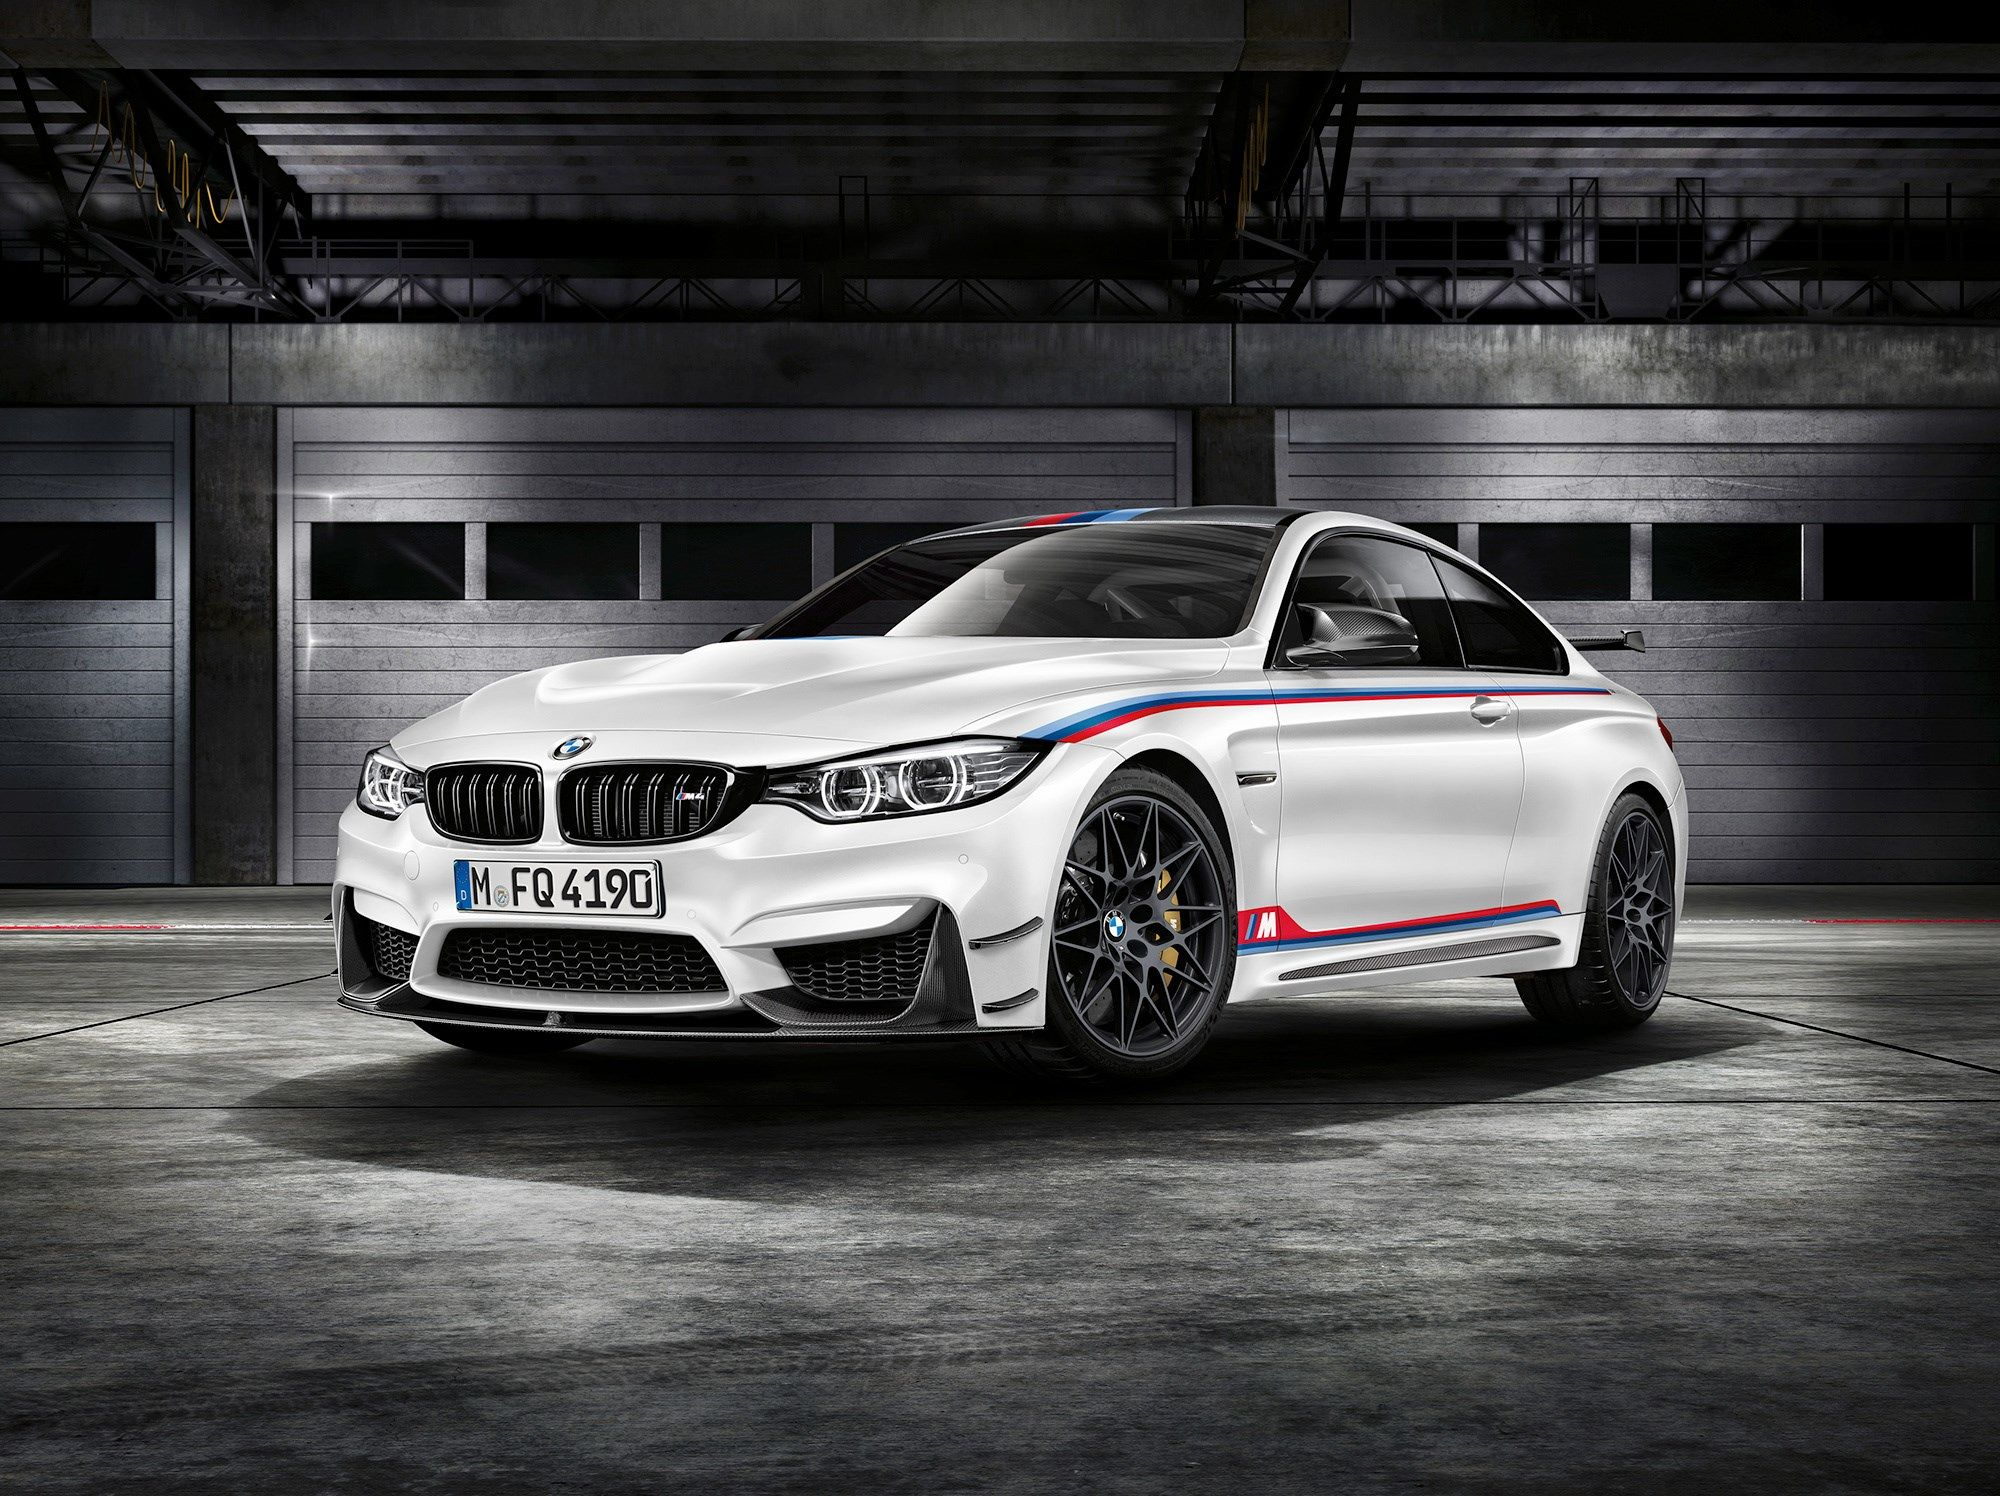 Gmail bmw theme - Bmw M4 Gts Themed Wallpaper For Desktops By Archie Jacobson 2016 09 13